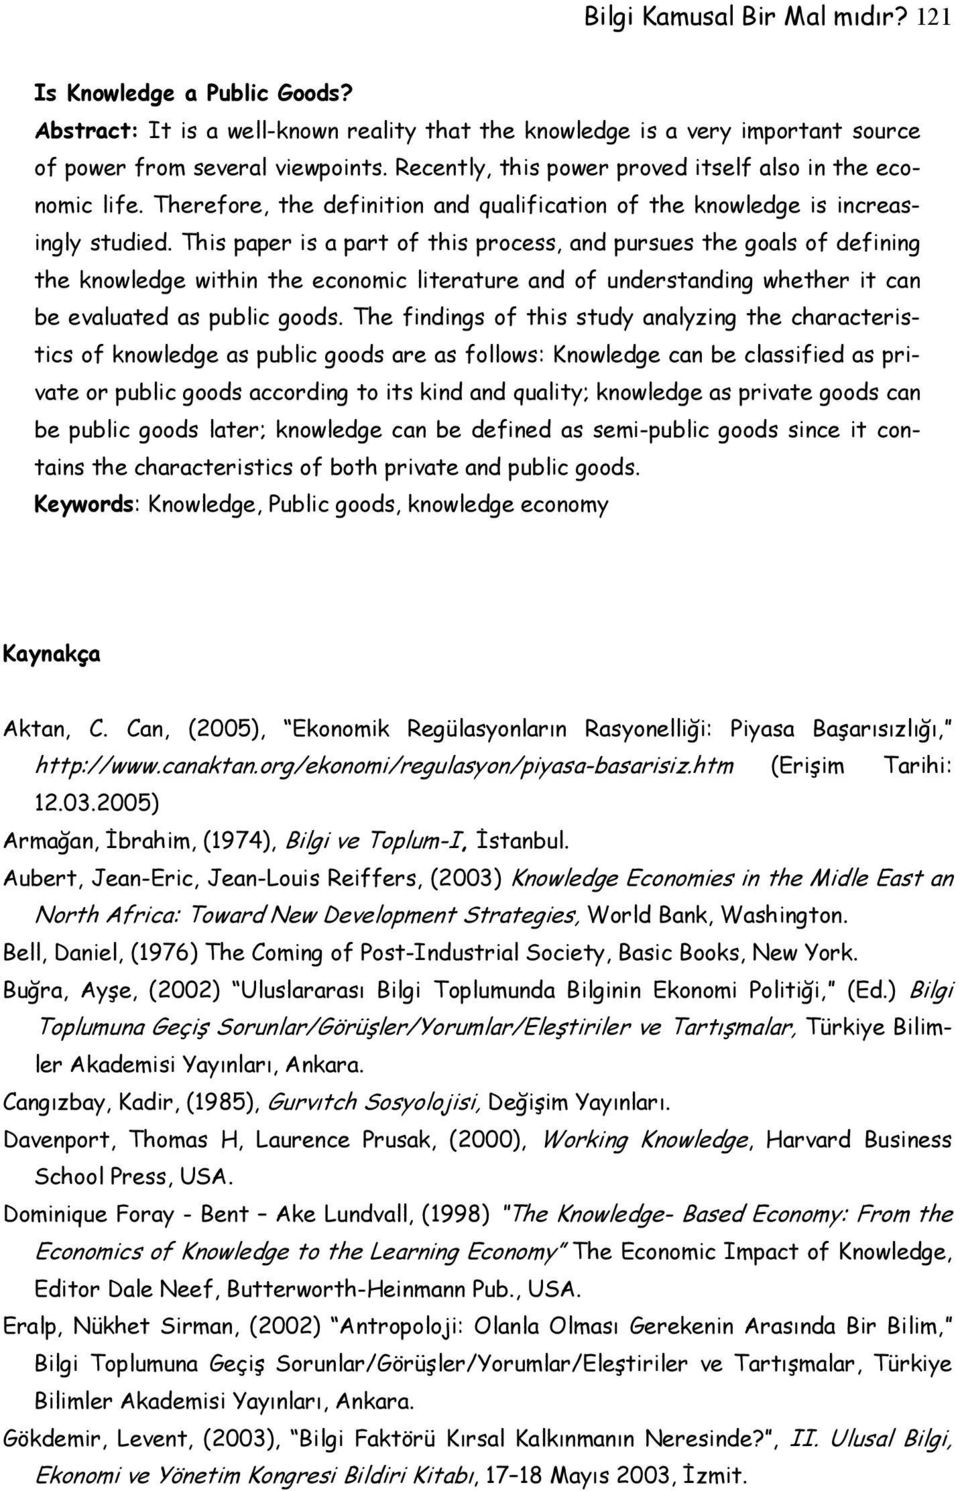 This paper is a part of this process, and pursues the goals of defining the knowledge within the economic literature and of understanding whether it can be evaluated as public goods.